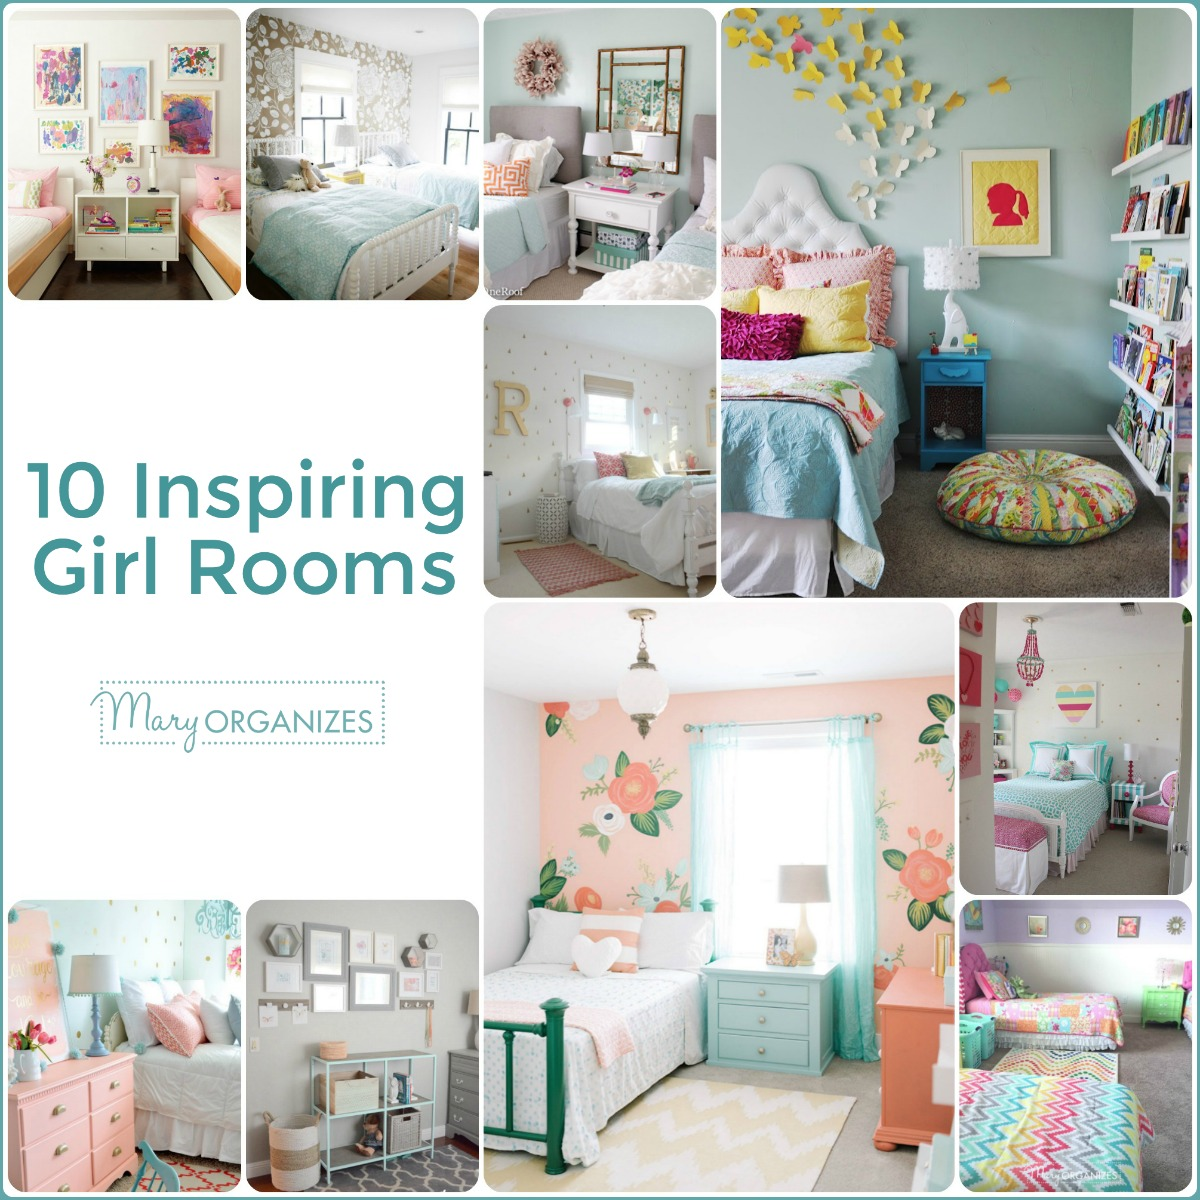 10 Inspiring Girl Rooms -s